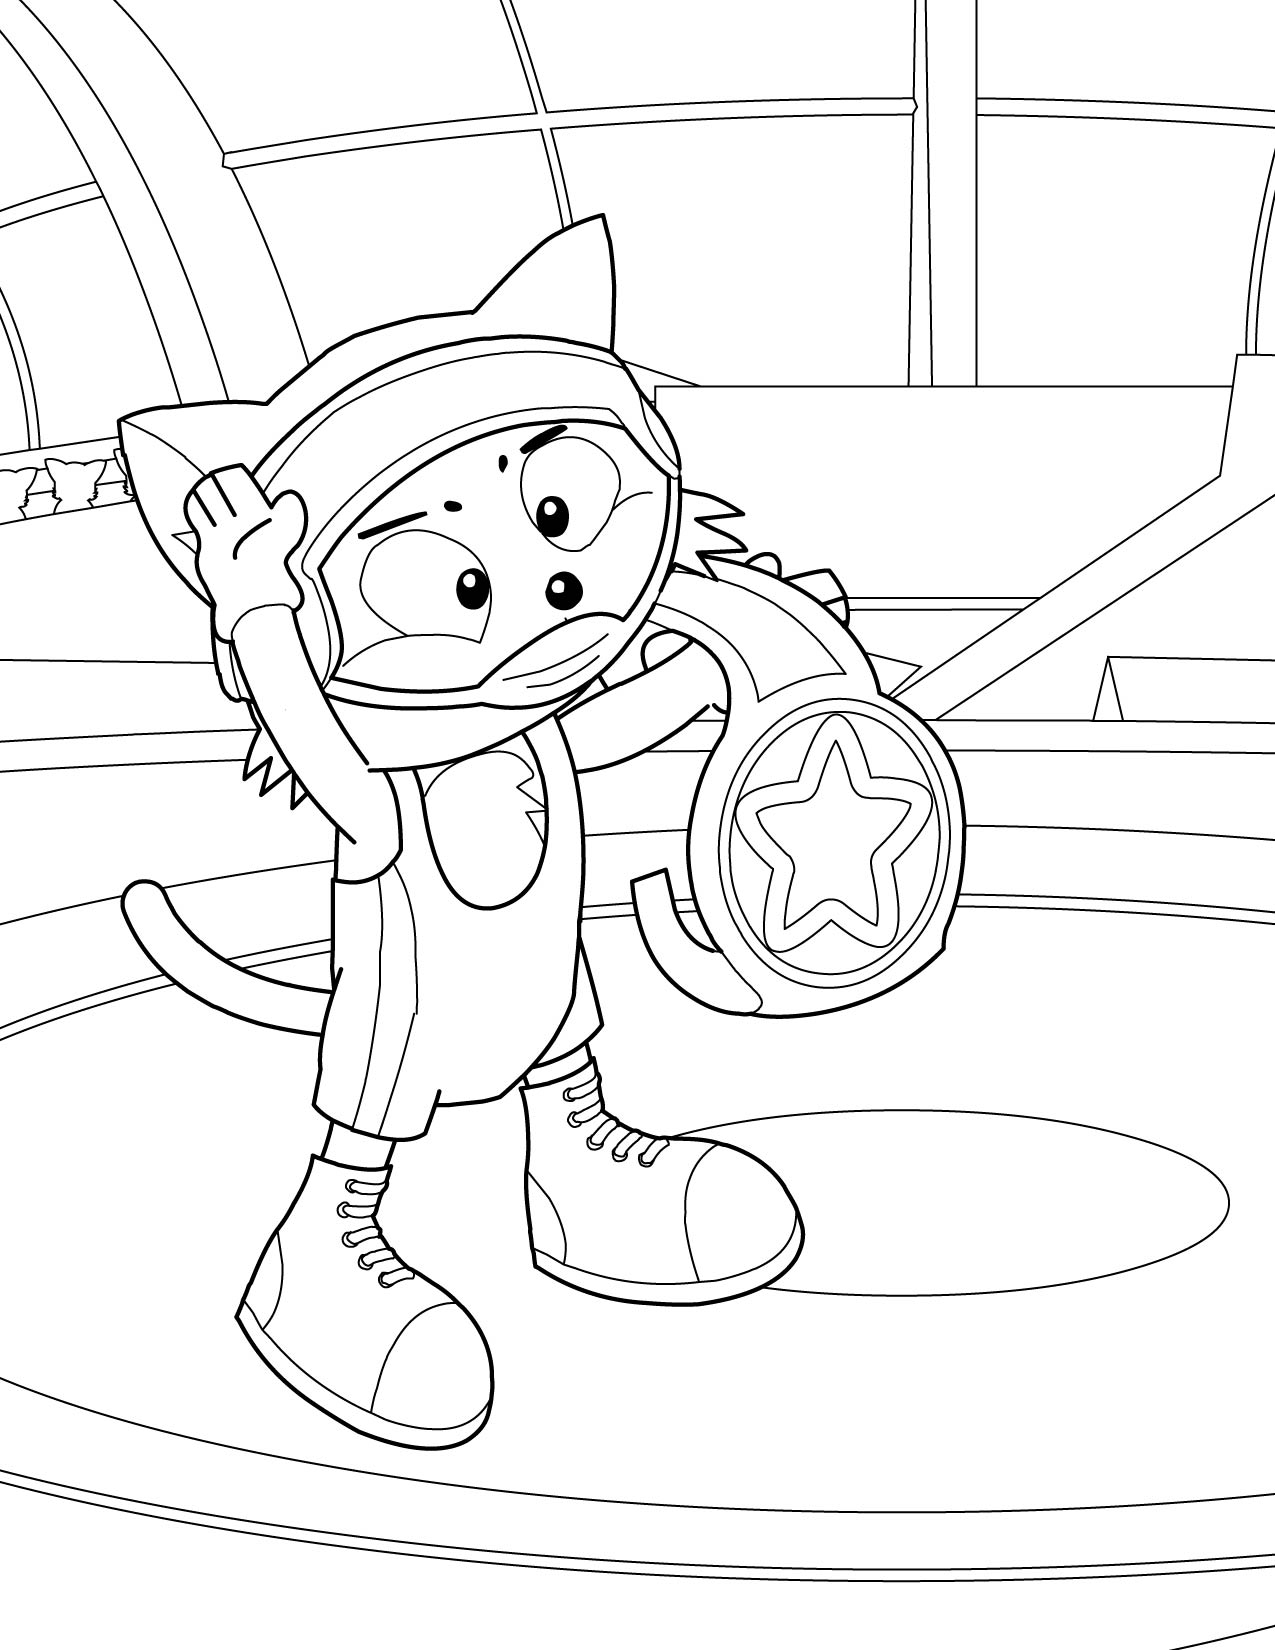 coloring wwe wrestling coloring pages for kids coloring home wwe coloring